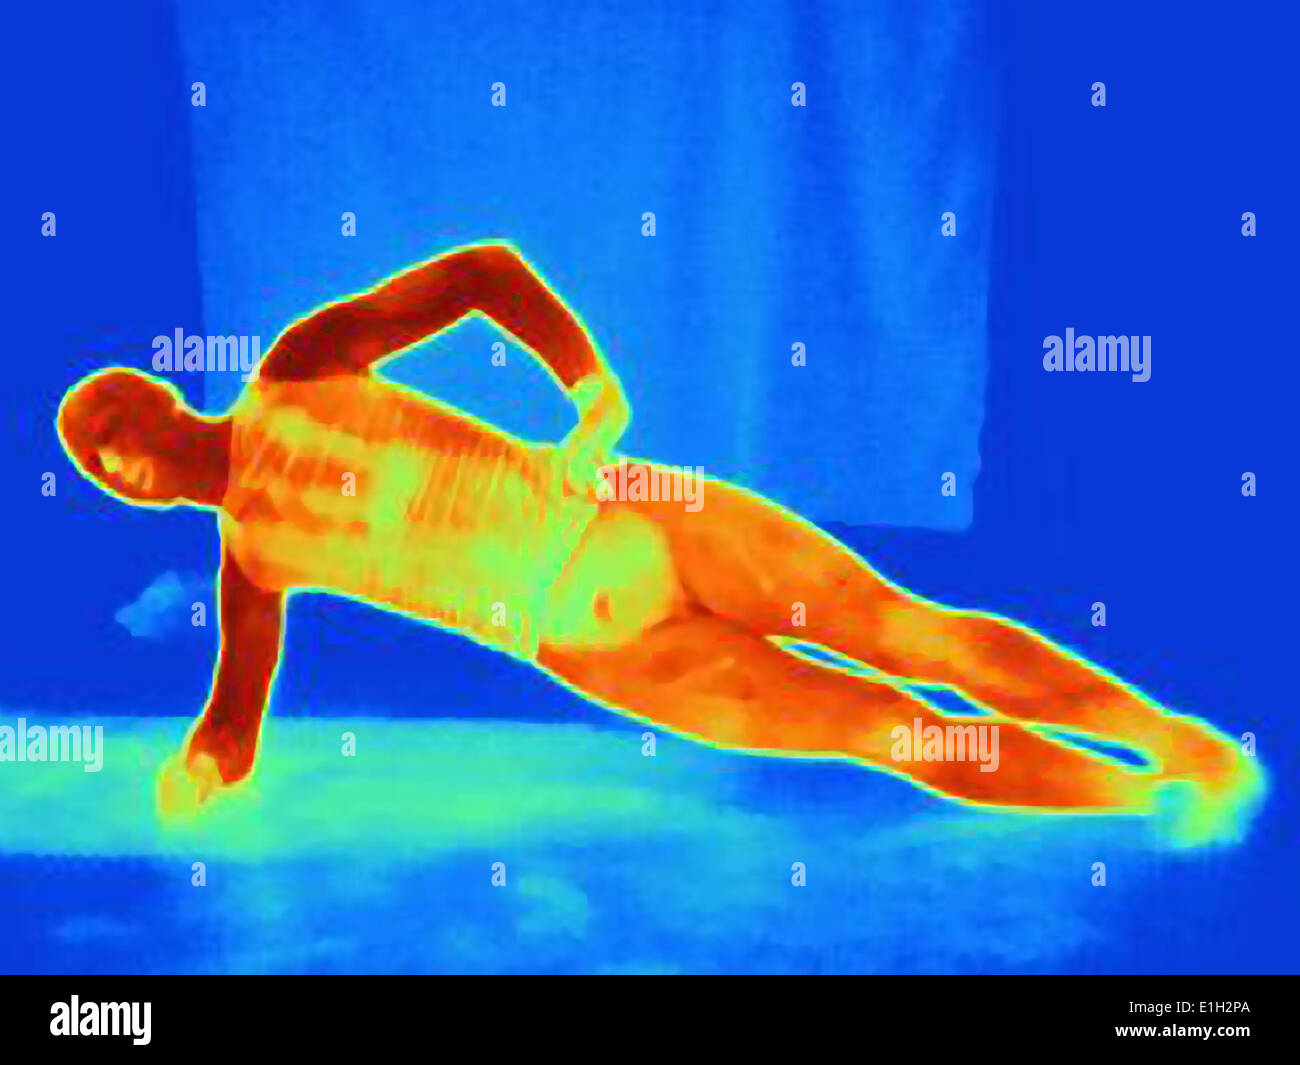 Thermal image of young man doing one arm push ups. The image shows the heat produced by the muscles - Stock Image